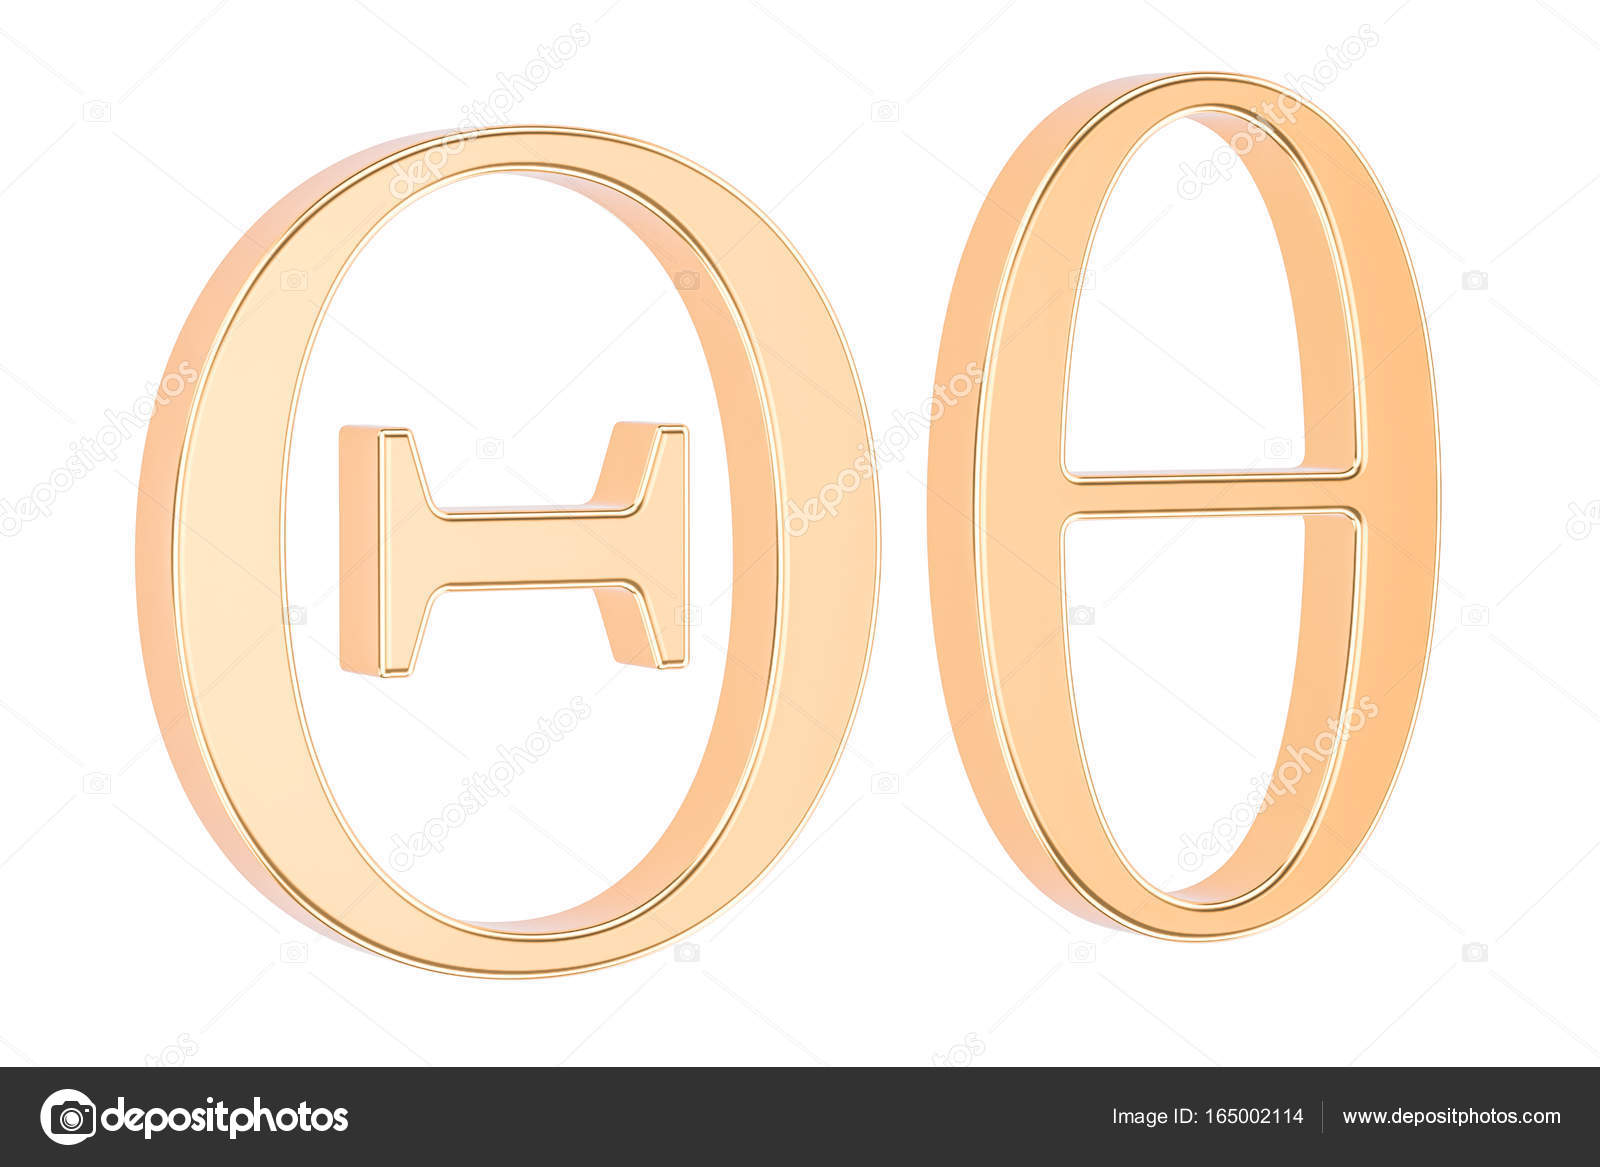 Golden greek letter theta 3d rendering stock photo alexlmx golden greek letter theta 3d rendering stock photo biocorpaavc Image collections